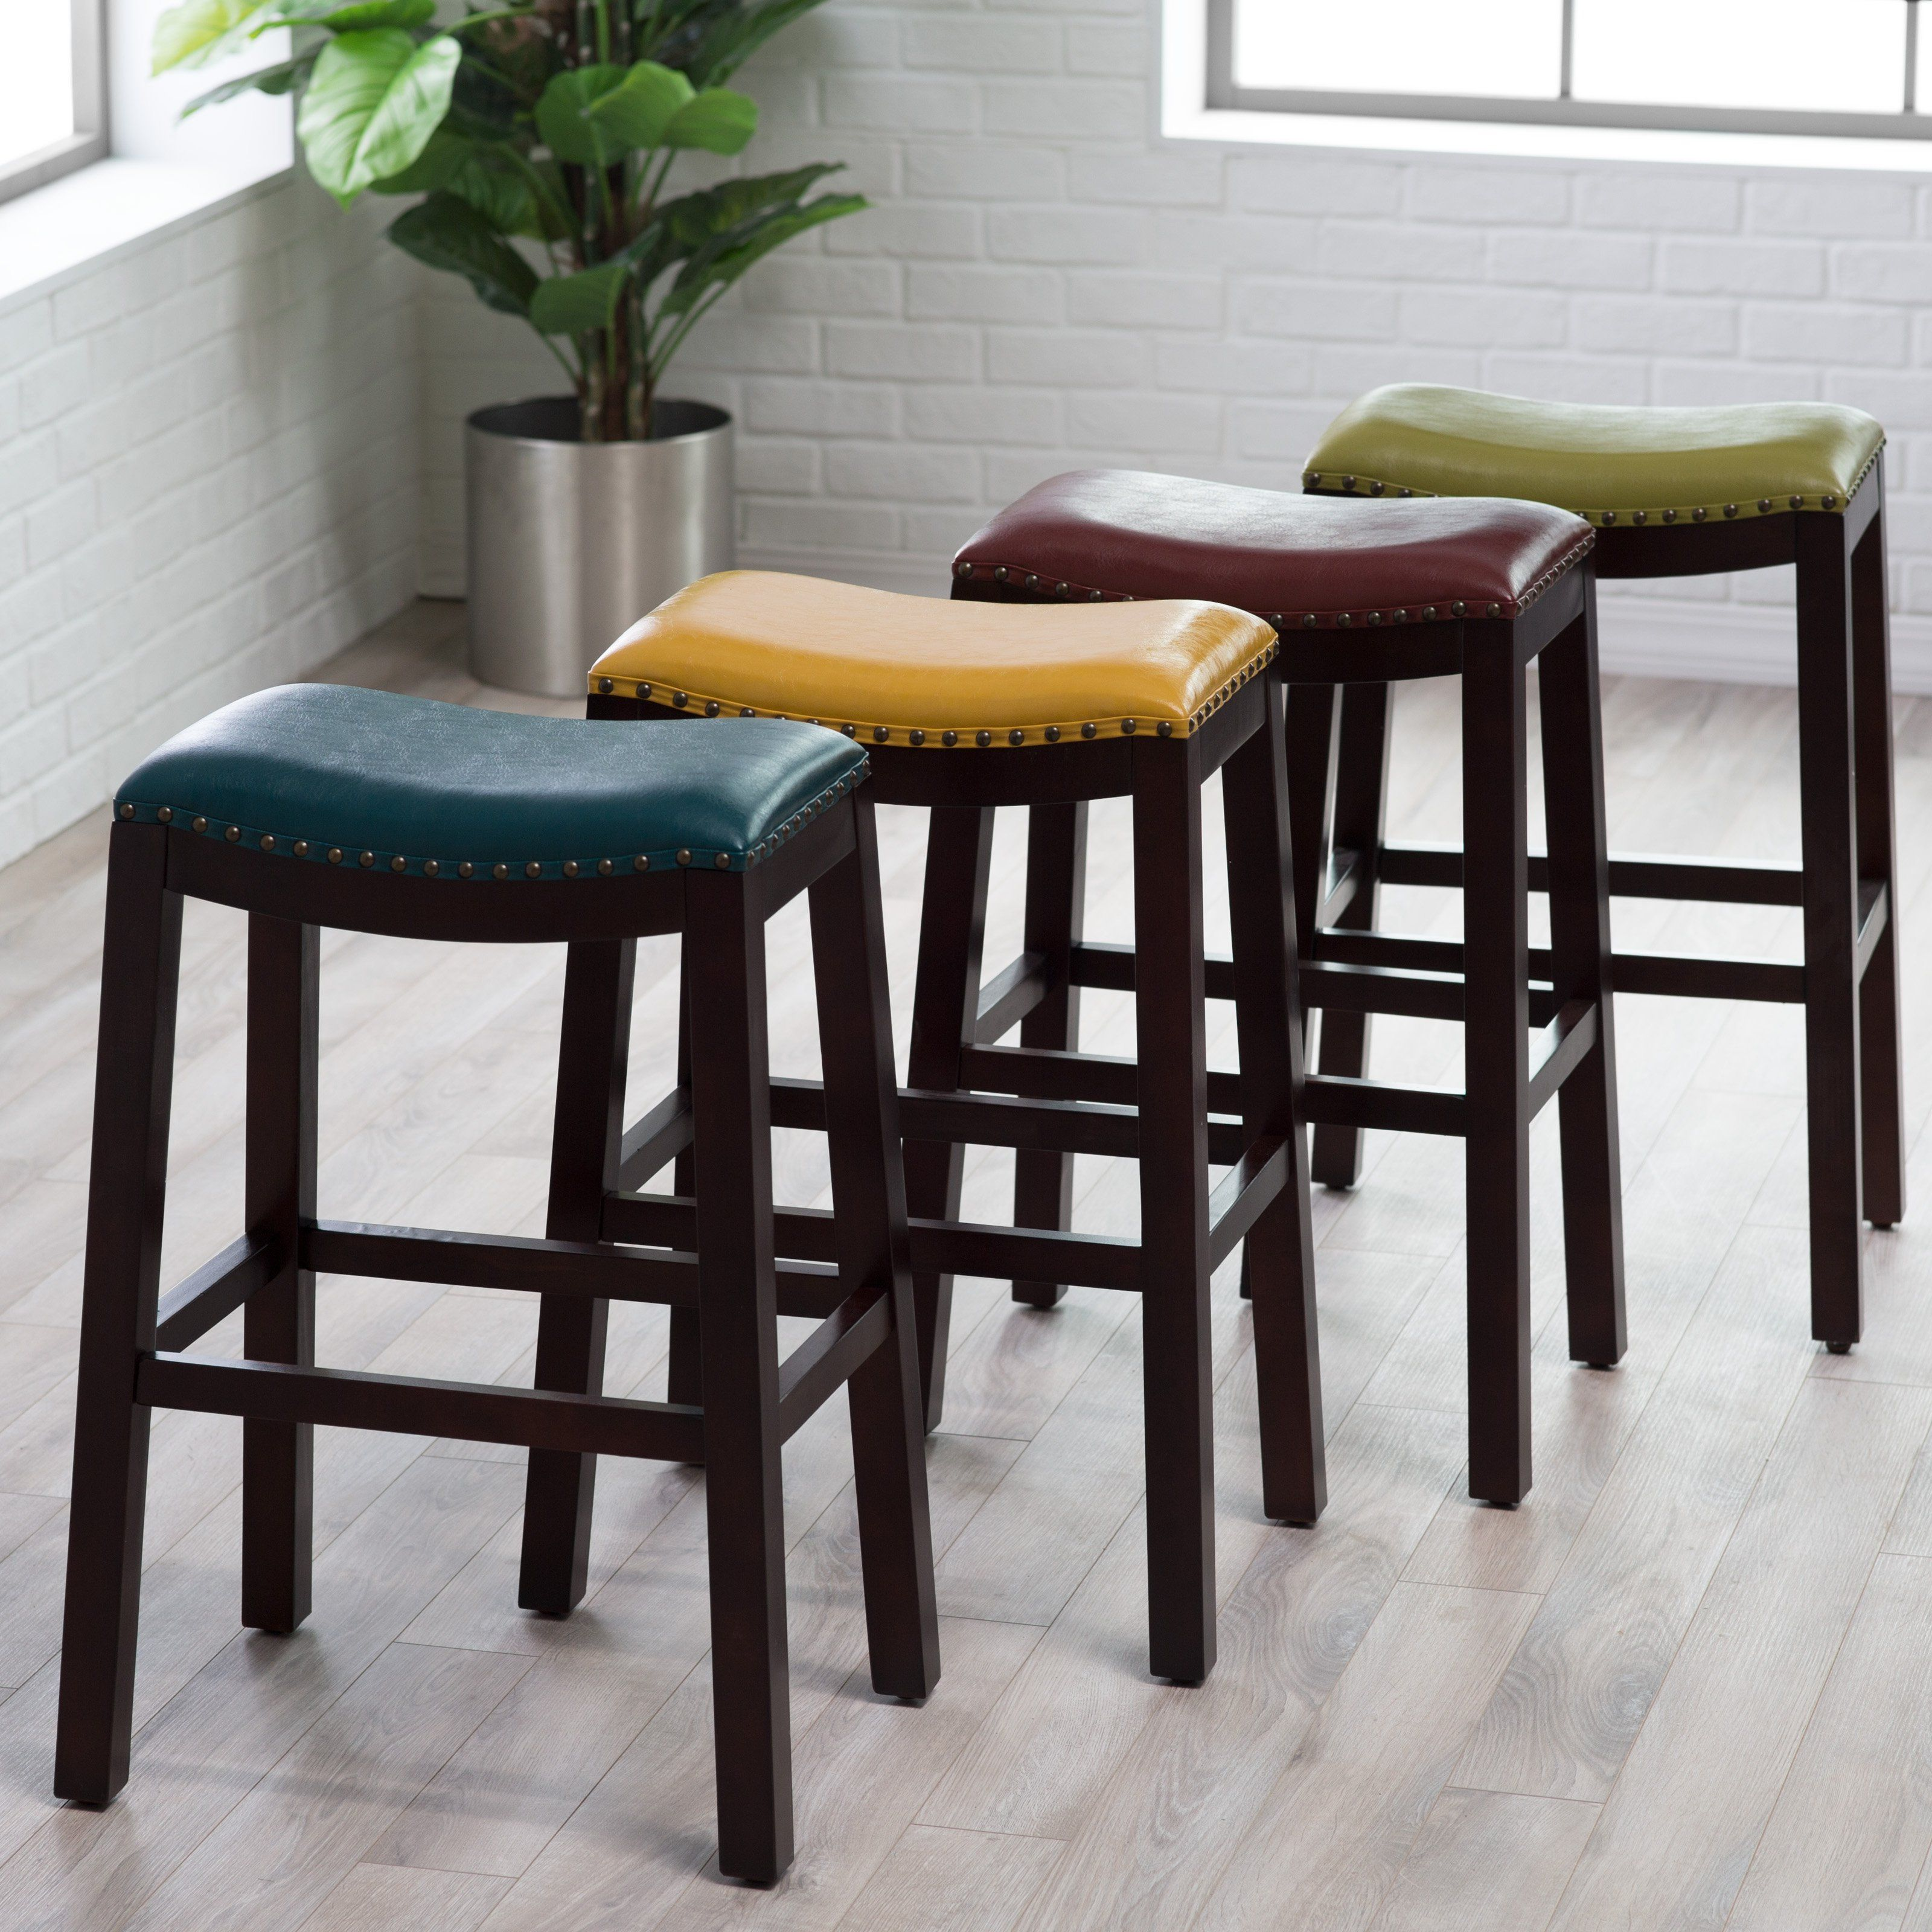 Exceptional Belham Living Hutton Leather Backless Saddle Bar Stool With Nailheads |  From Hayneedle.com